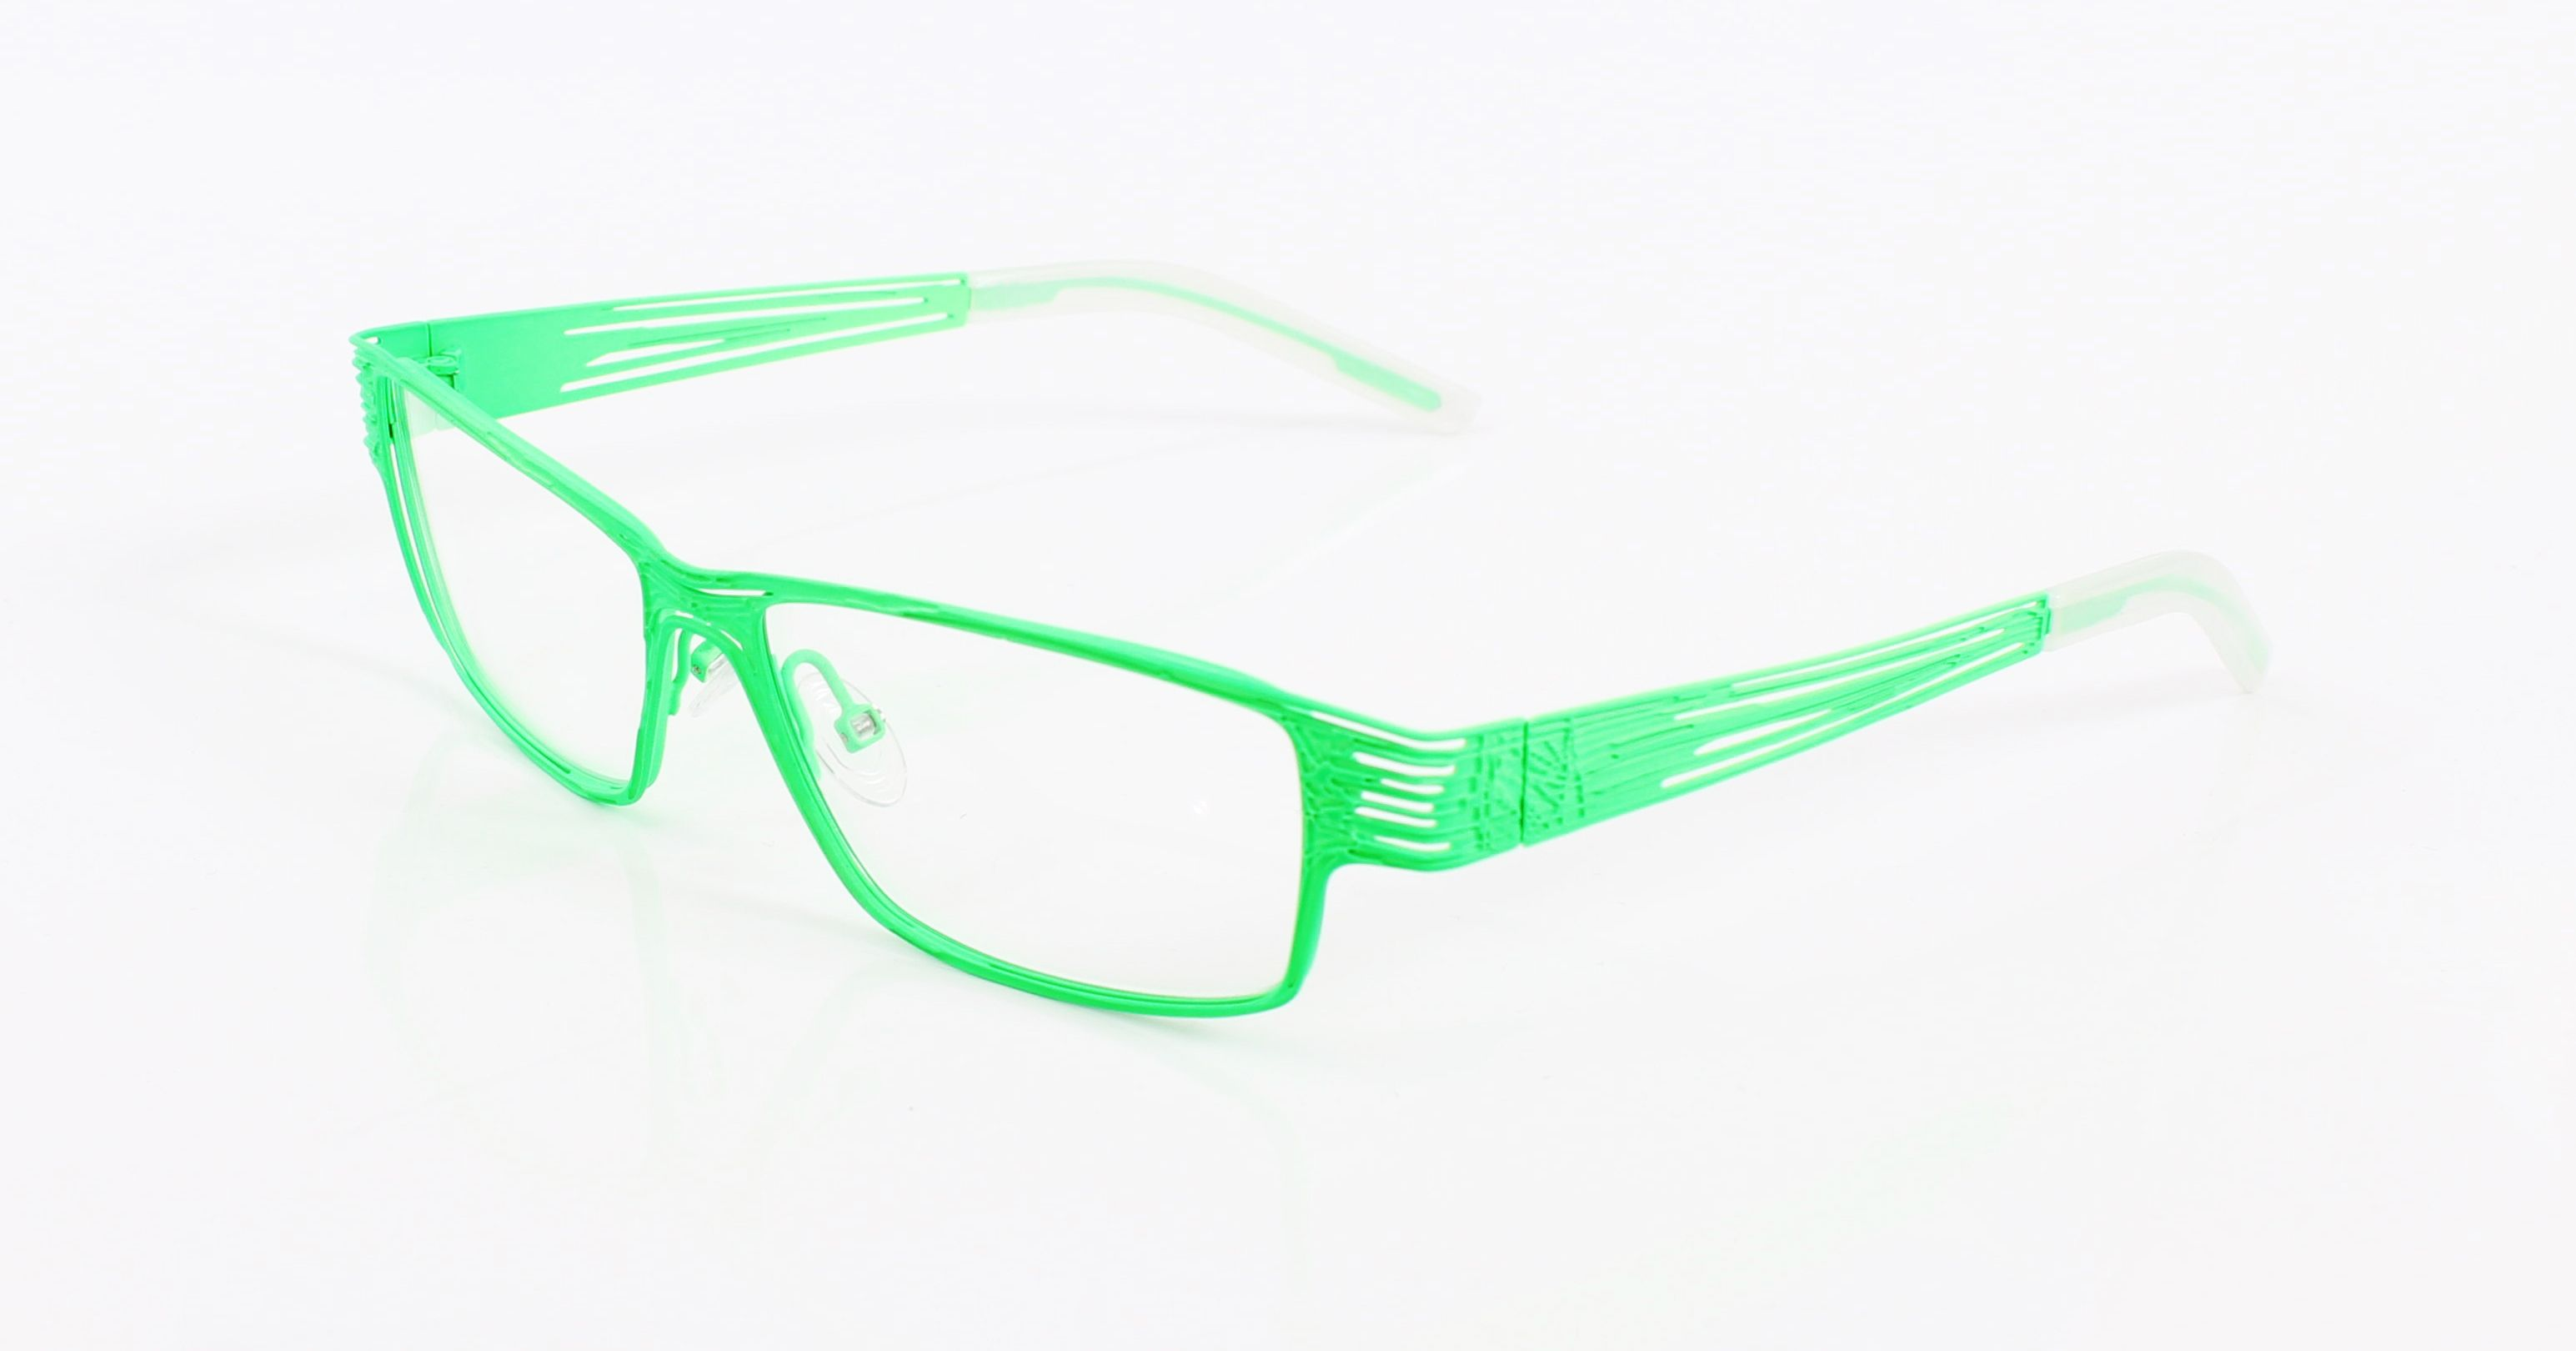 Anatomy 9 color 16 eyeglasses by Noego Eyewear | Noego Eyewear ...